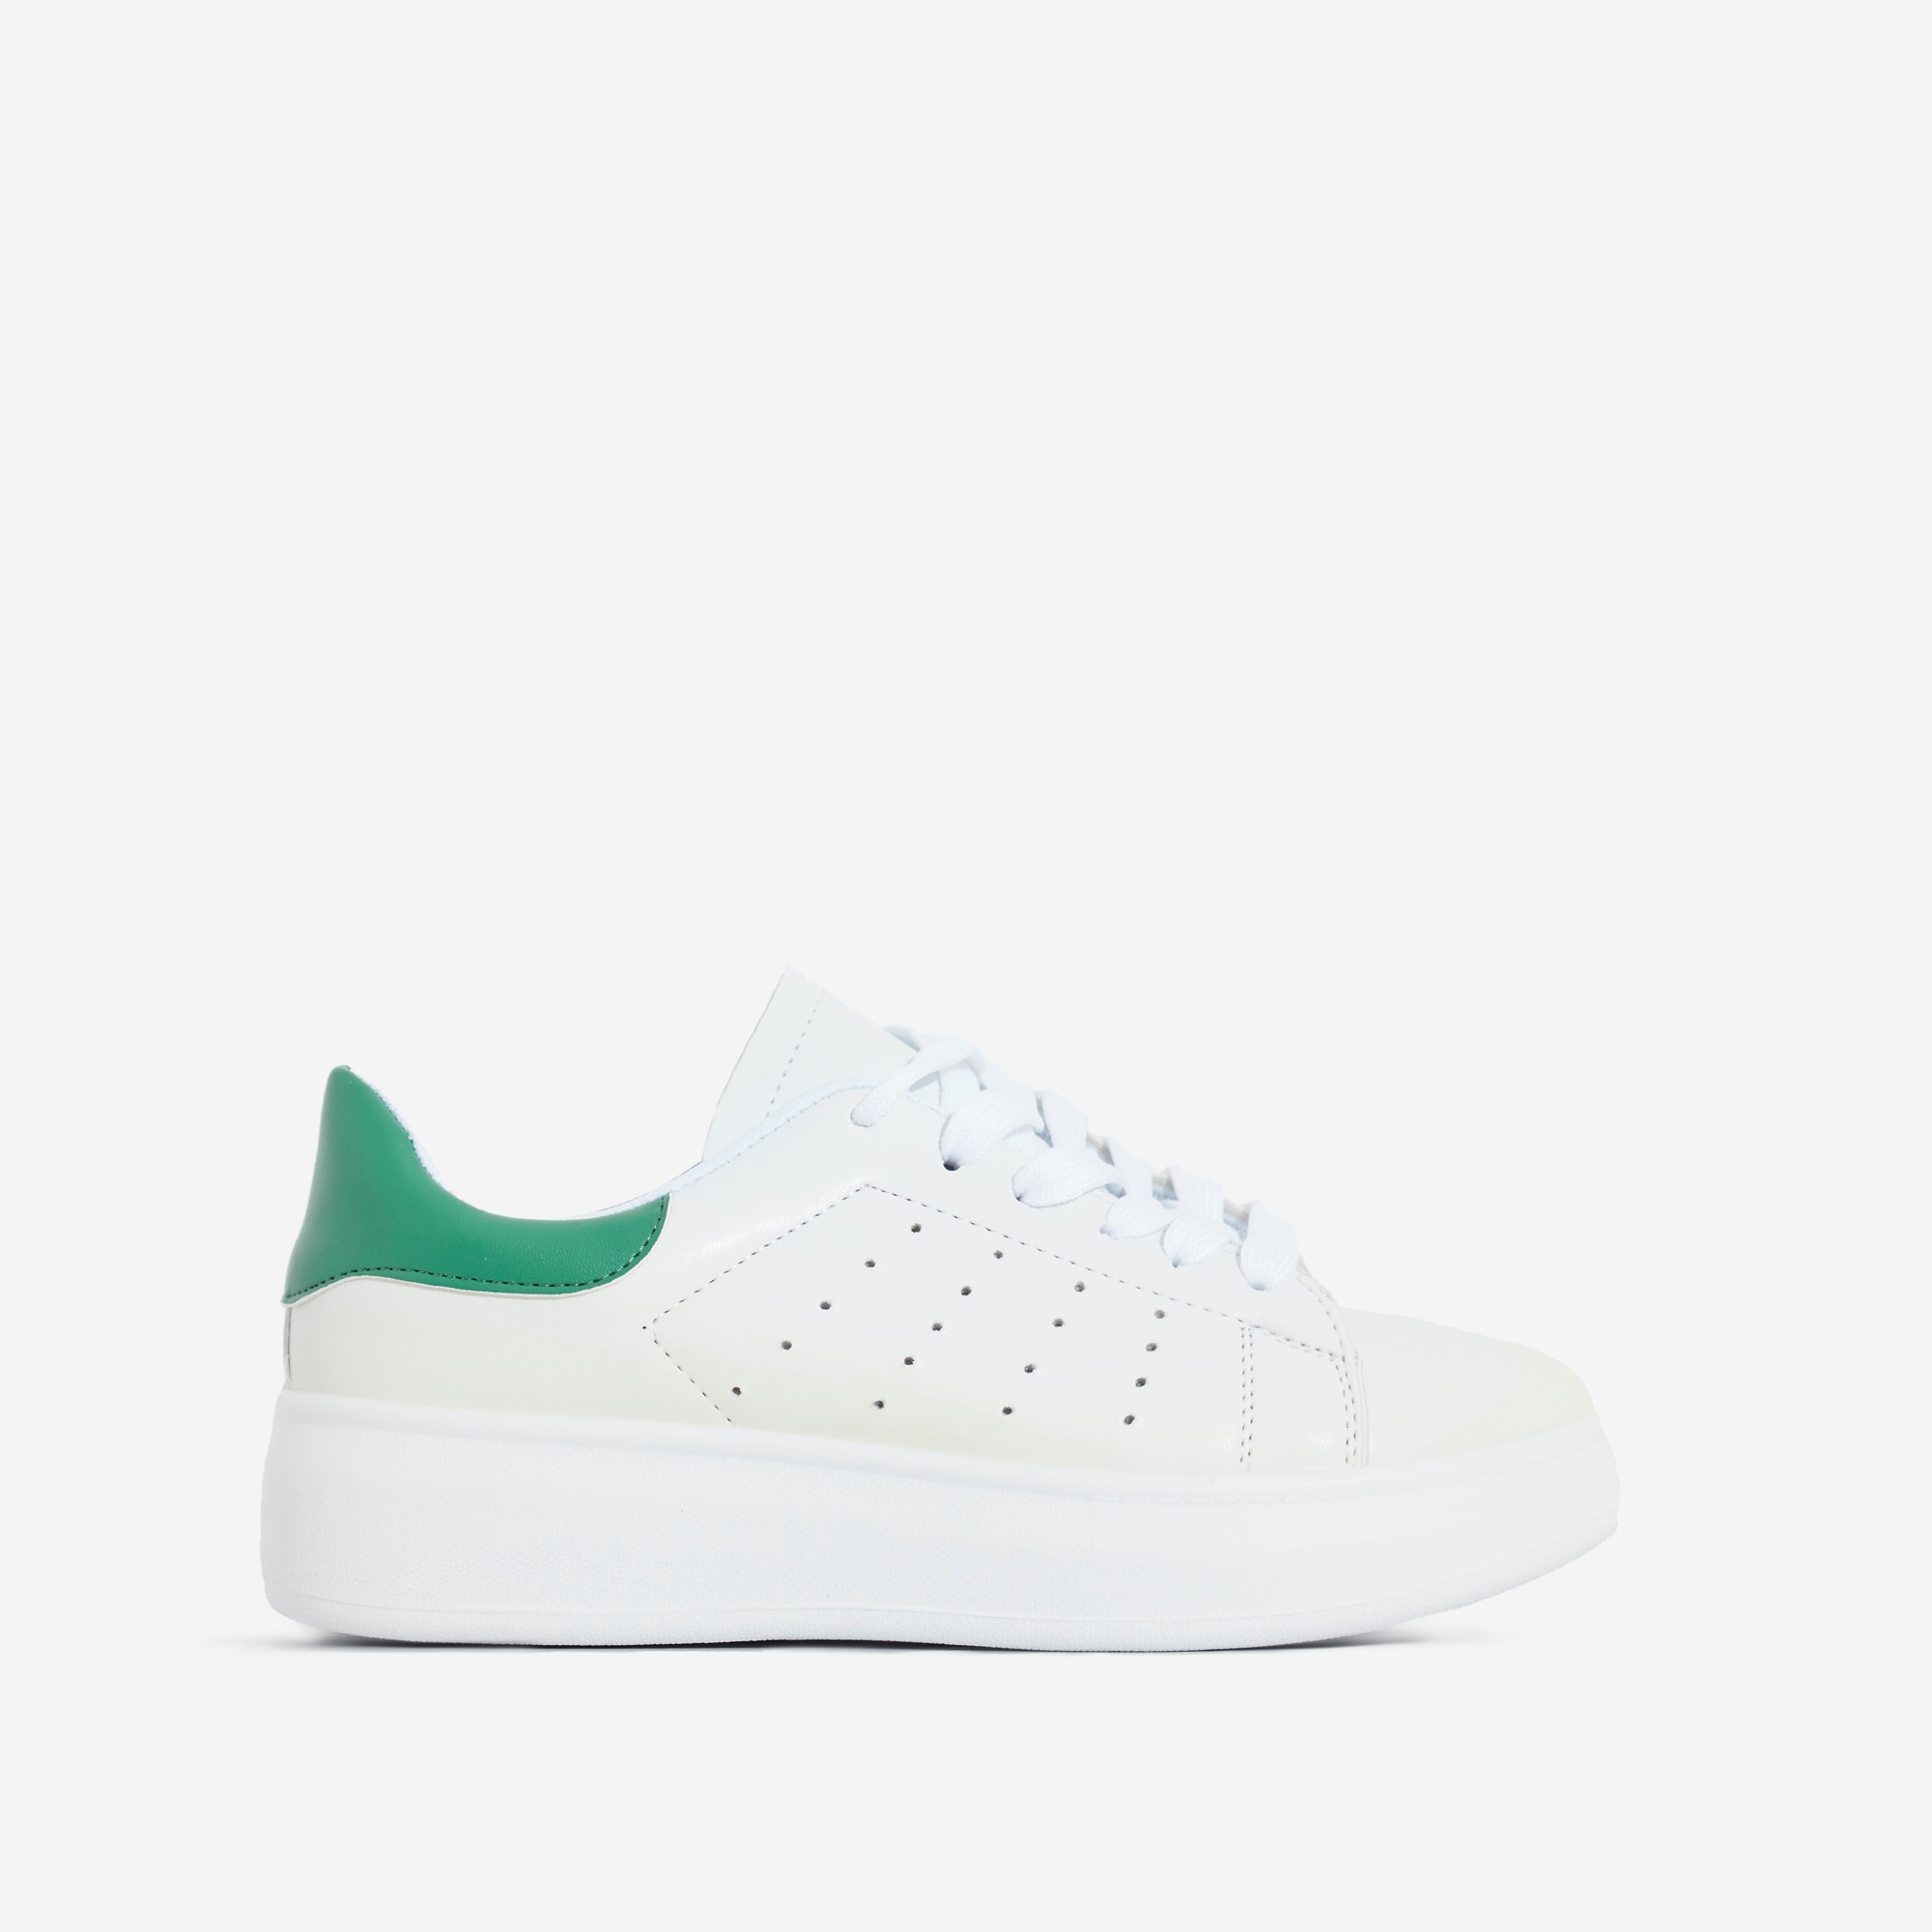 Fade Lace Up Green Heel Tab Trainer In White